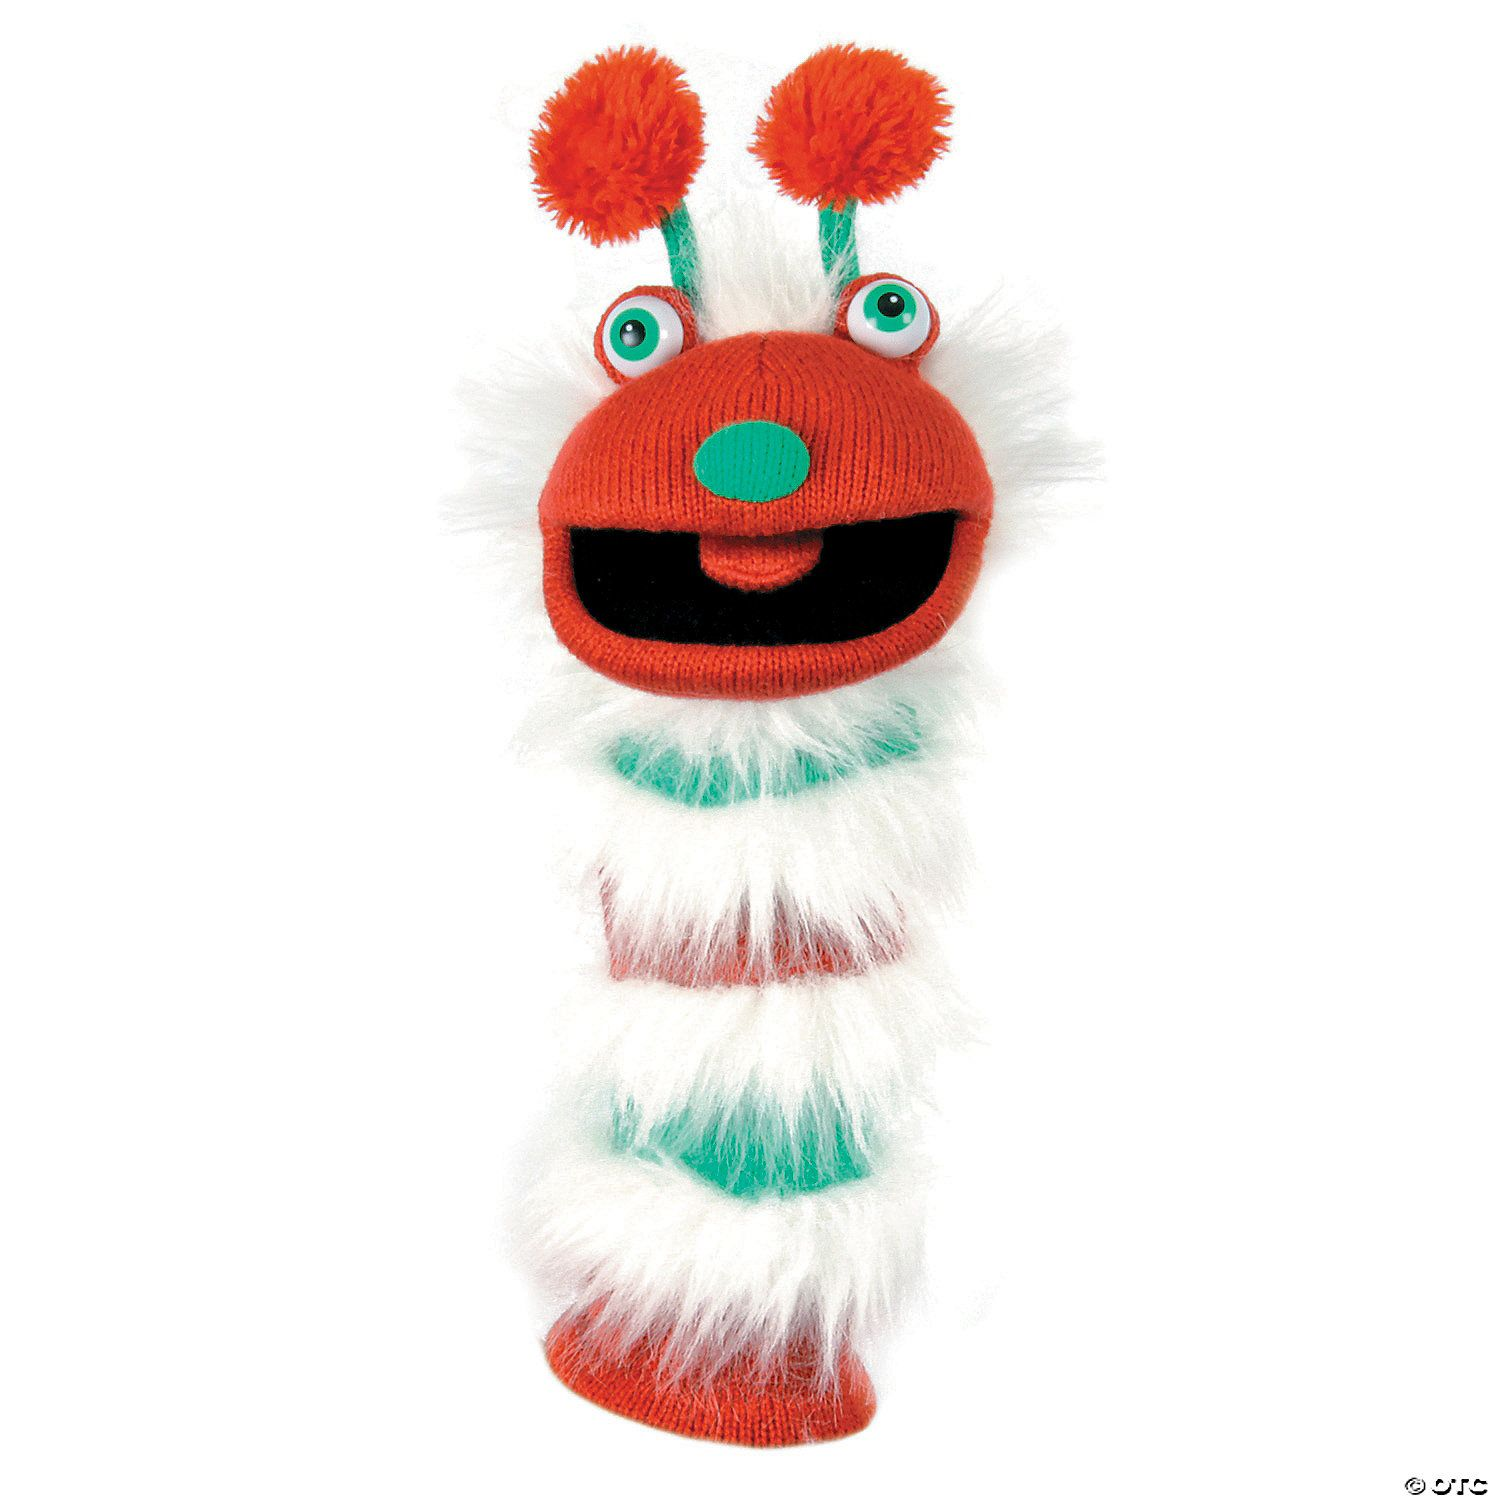 Chris sockette knitted puppet%7e13763746